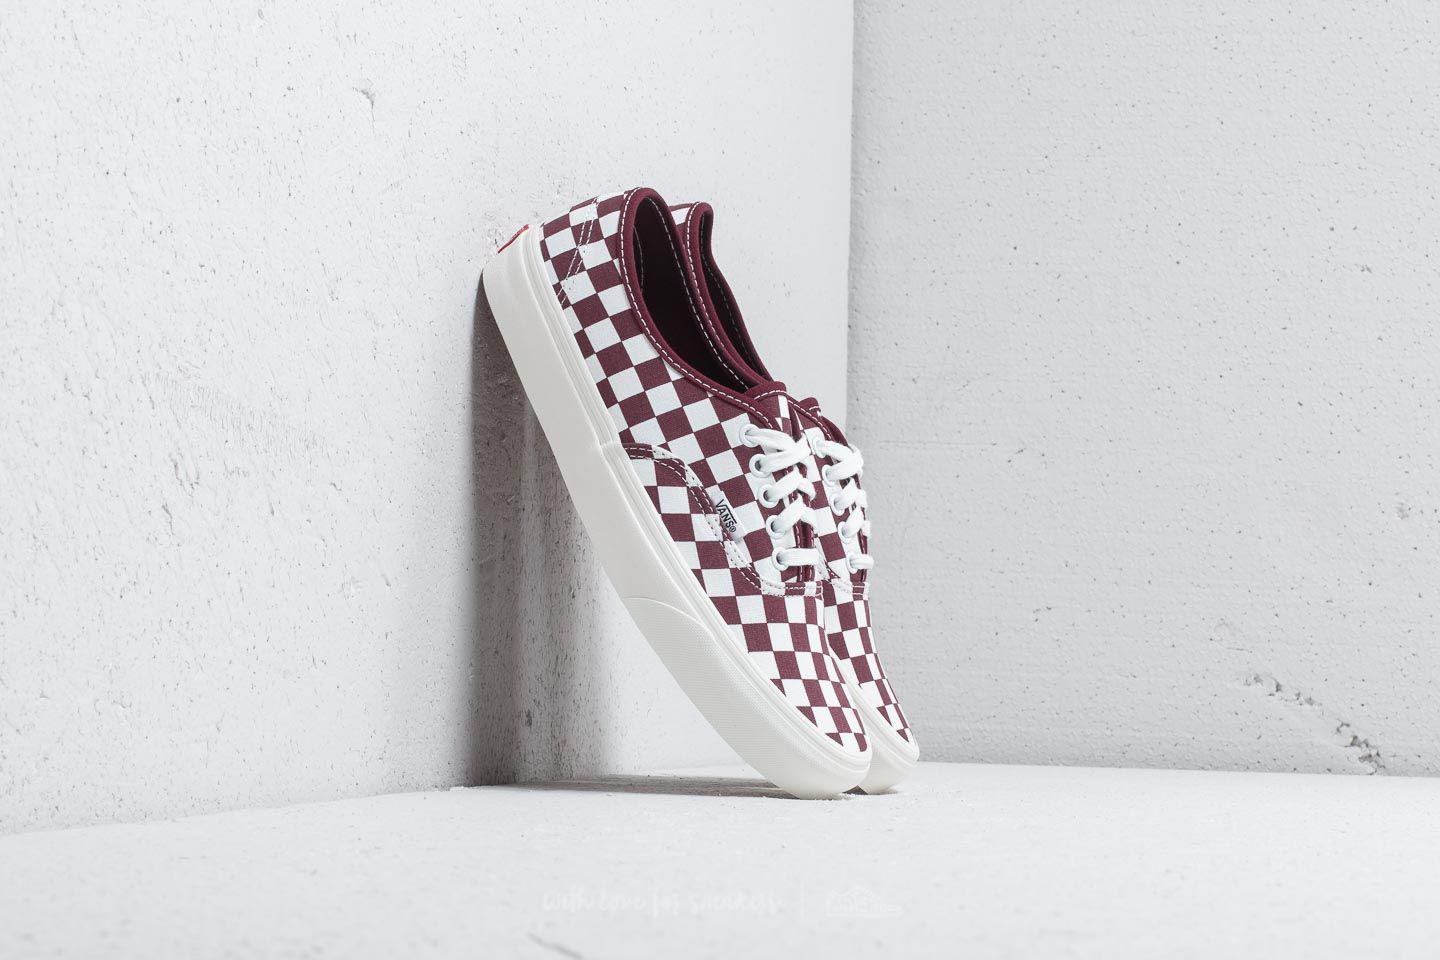 c698736b92 Lyst - Vans Authentic (checkerboard) Port Royal